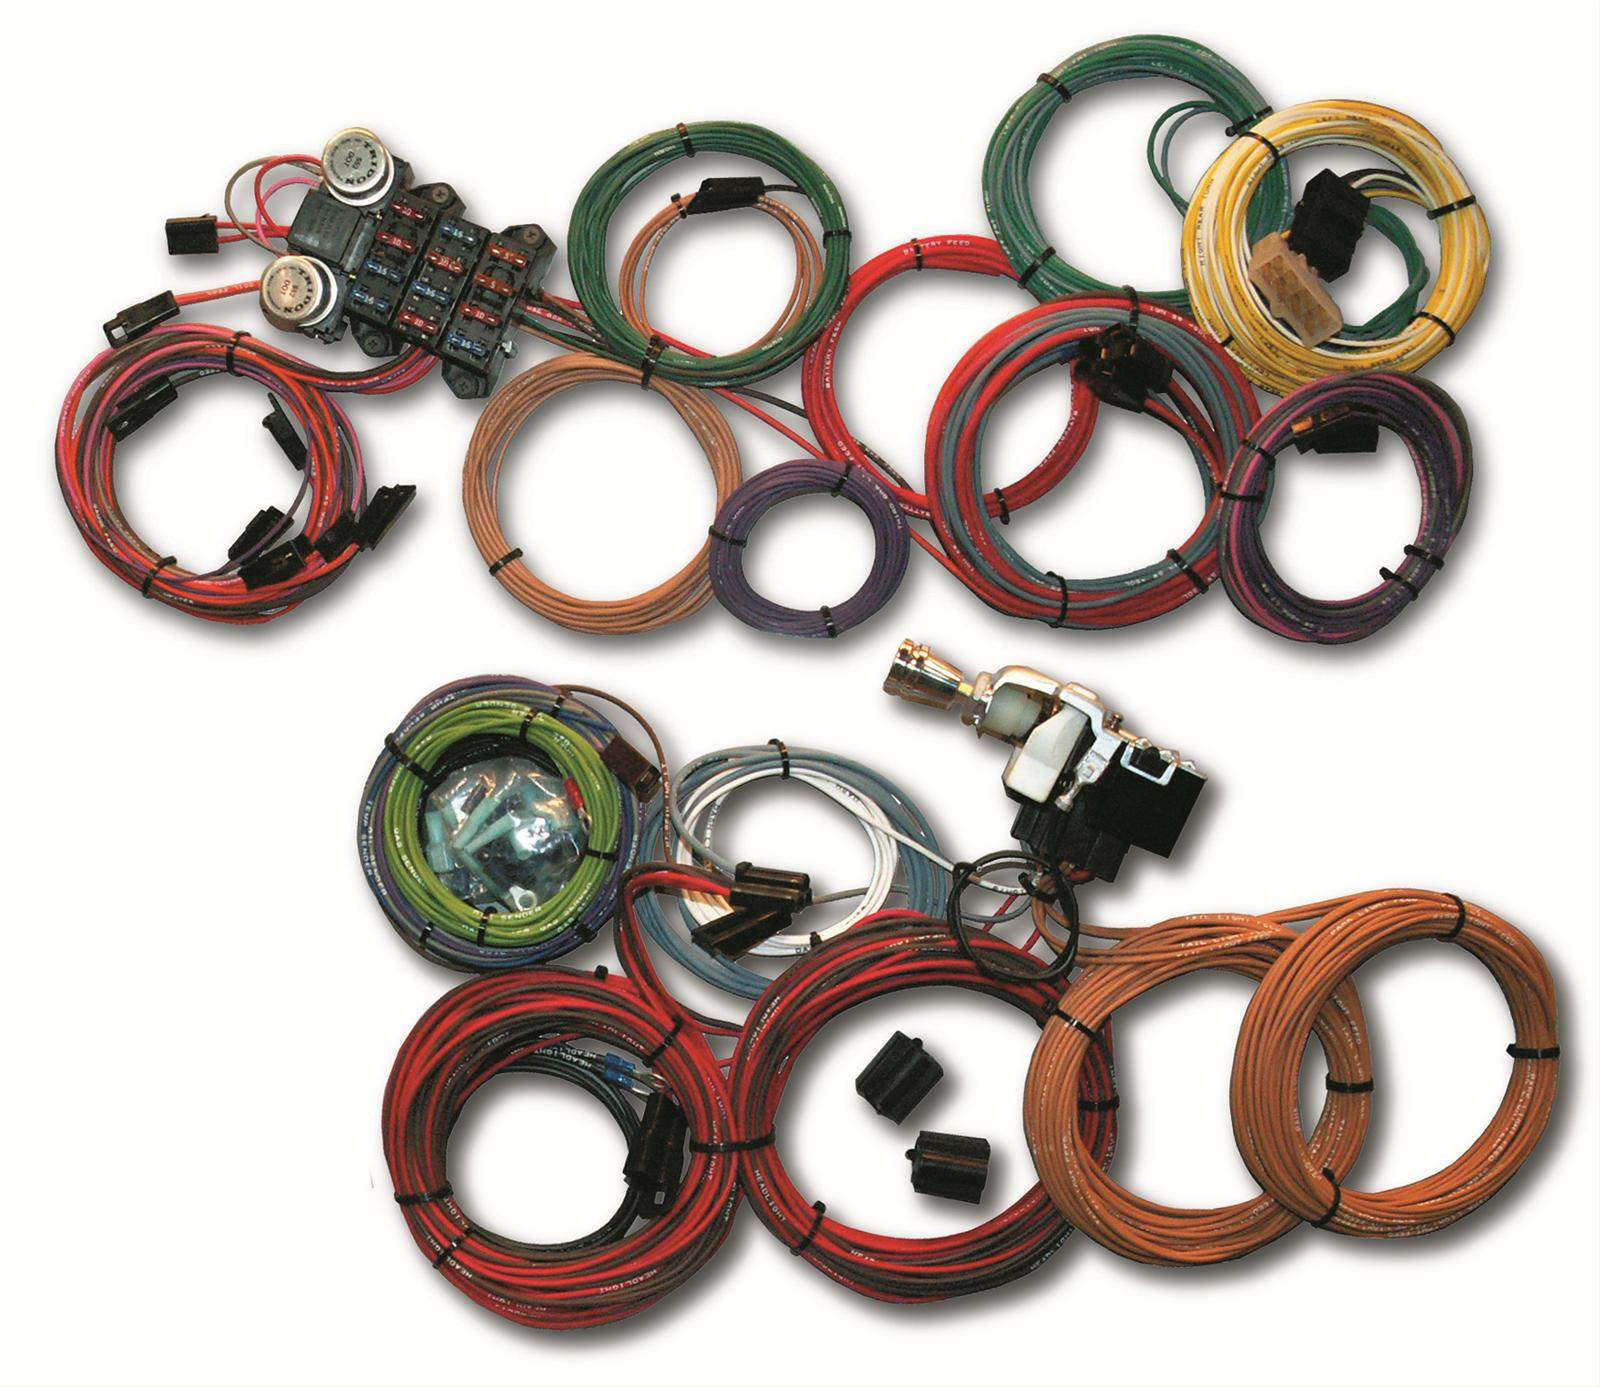 hight resolution of ron francis wiring mopar powered retro series wiring kits wr95 free shipping on orders over 99 at summit racing